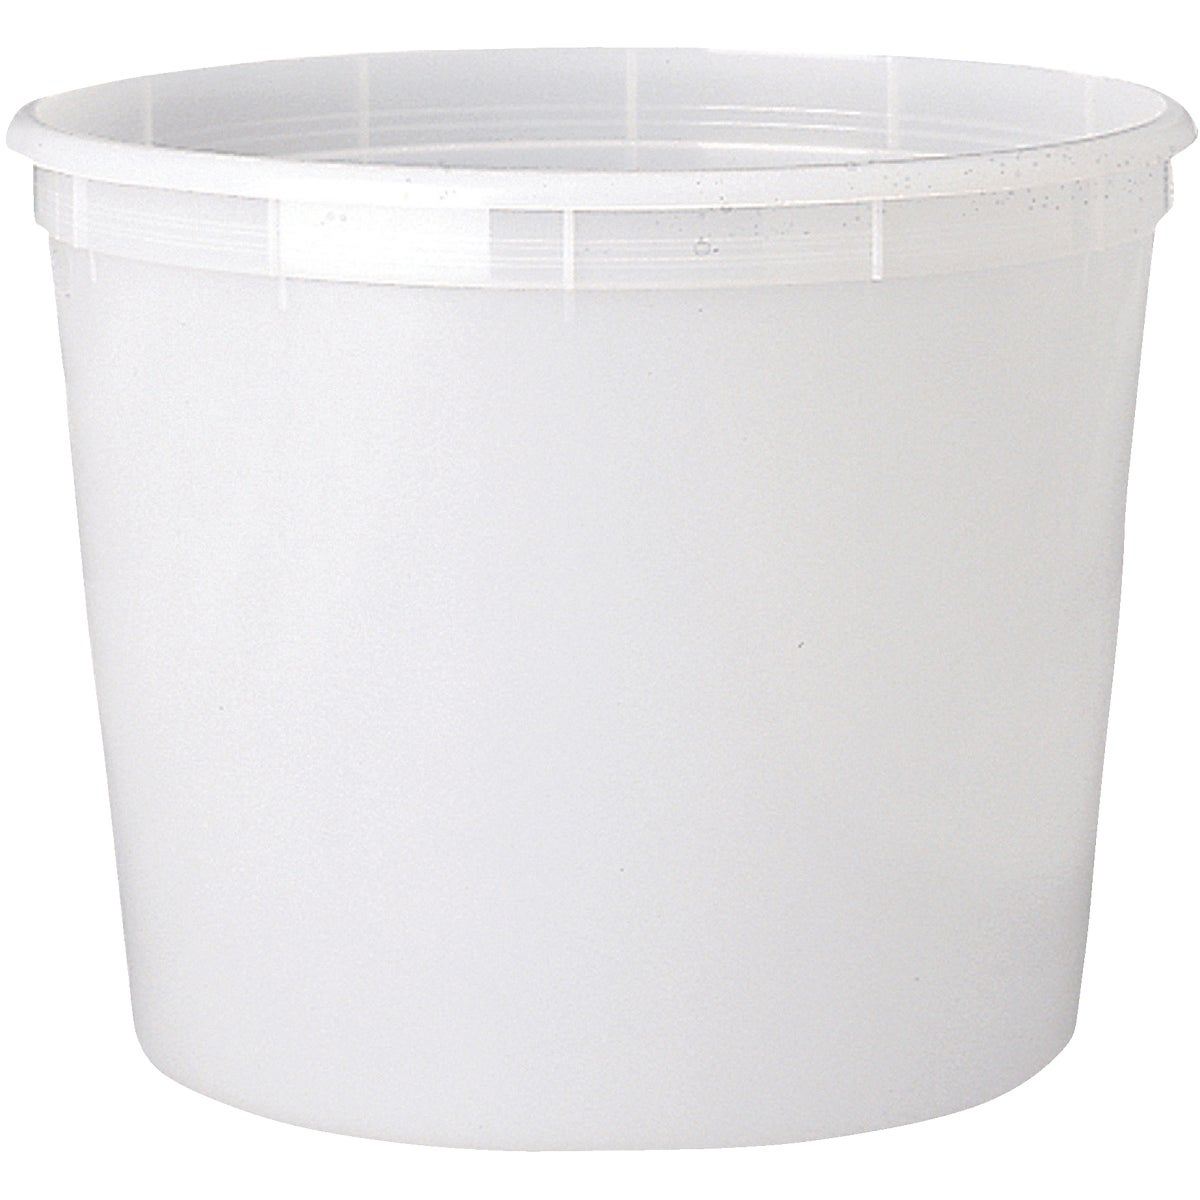 10PT PLASTIC UTILITY TUB - 10PT by Leaktite Corporation